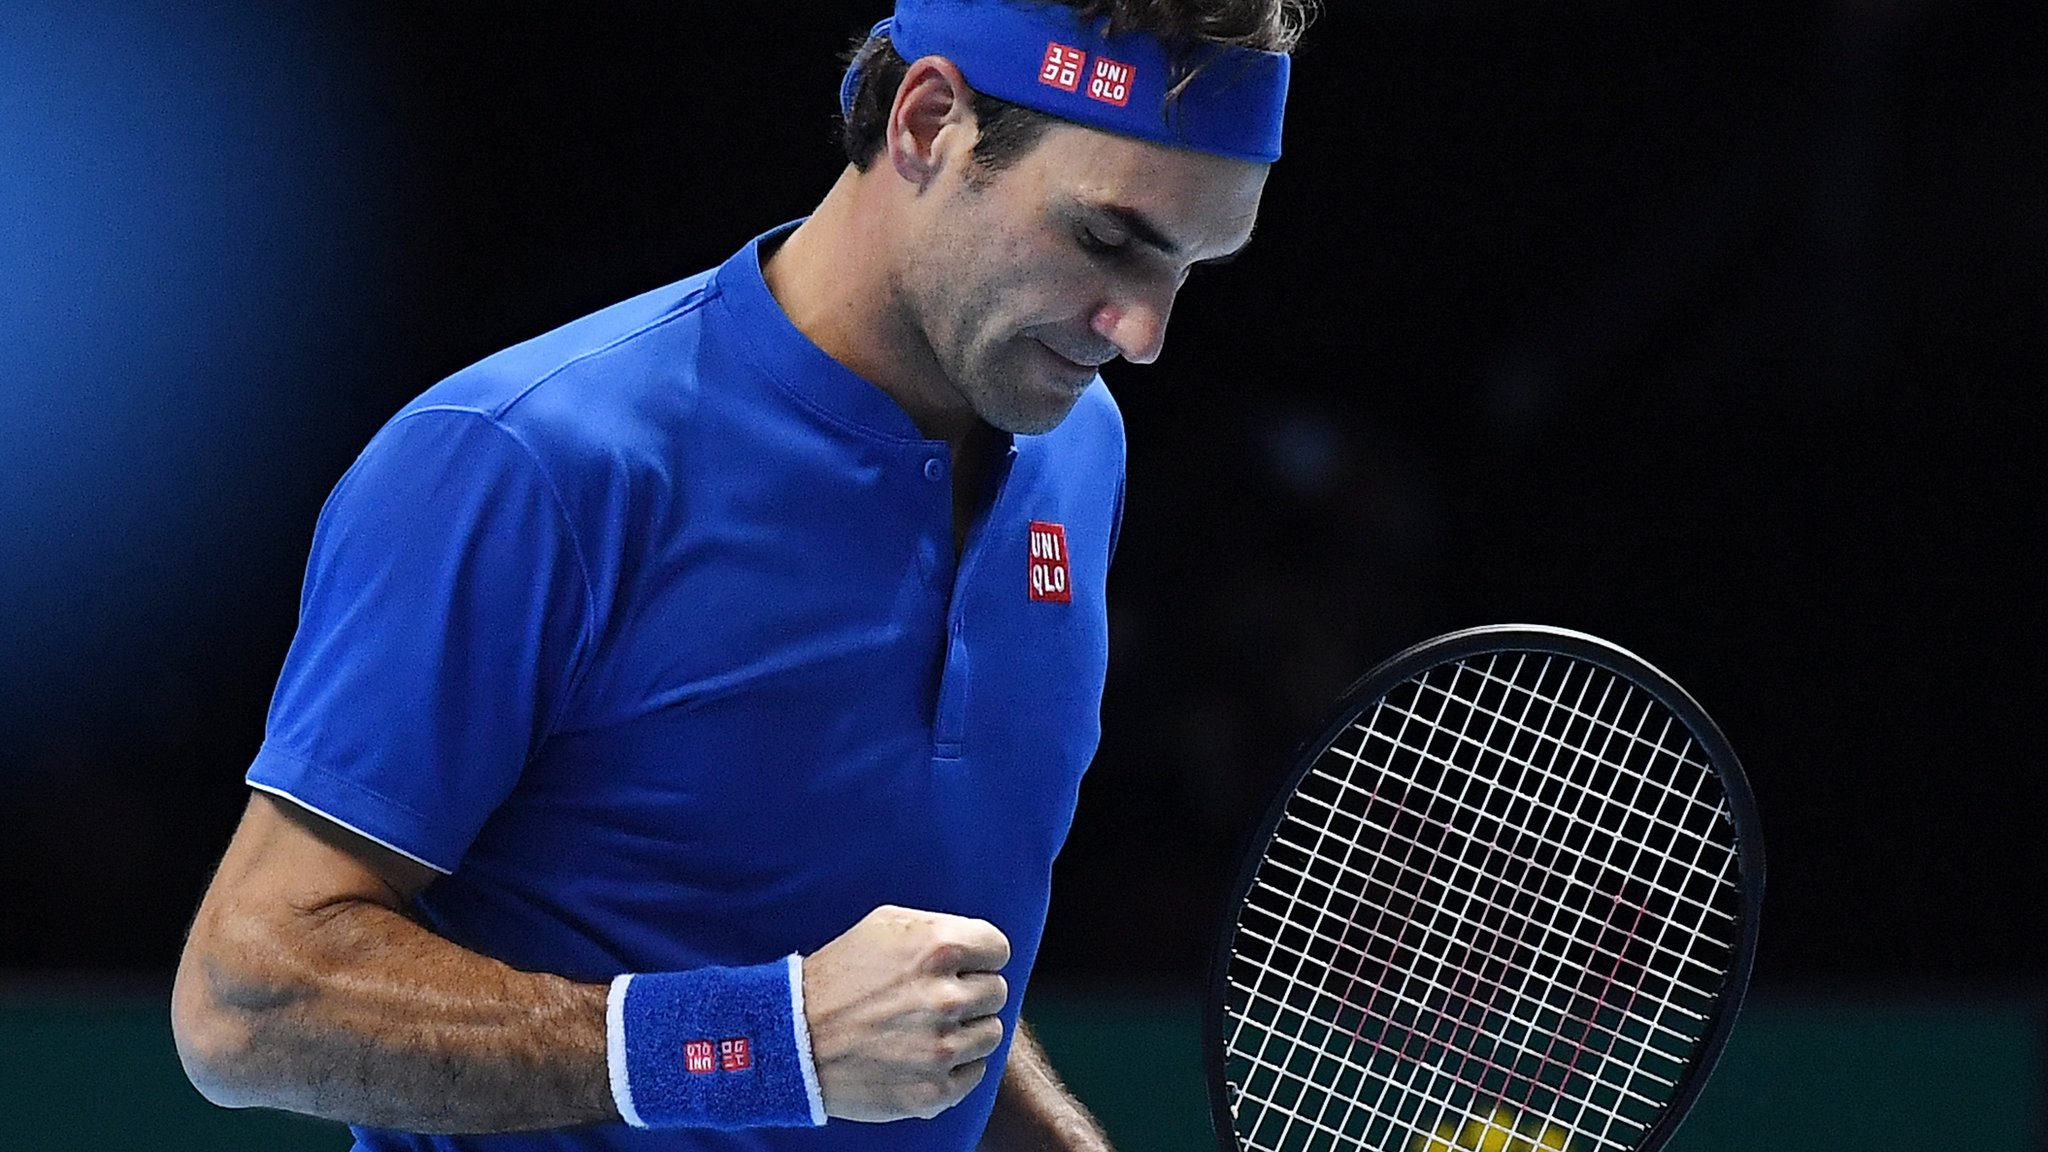 Federer wins to keep alive ATP Finals hopes